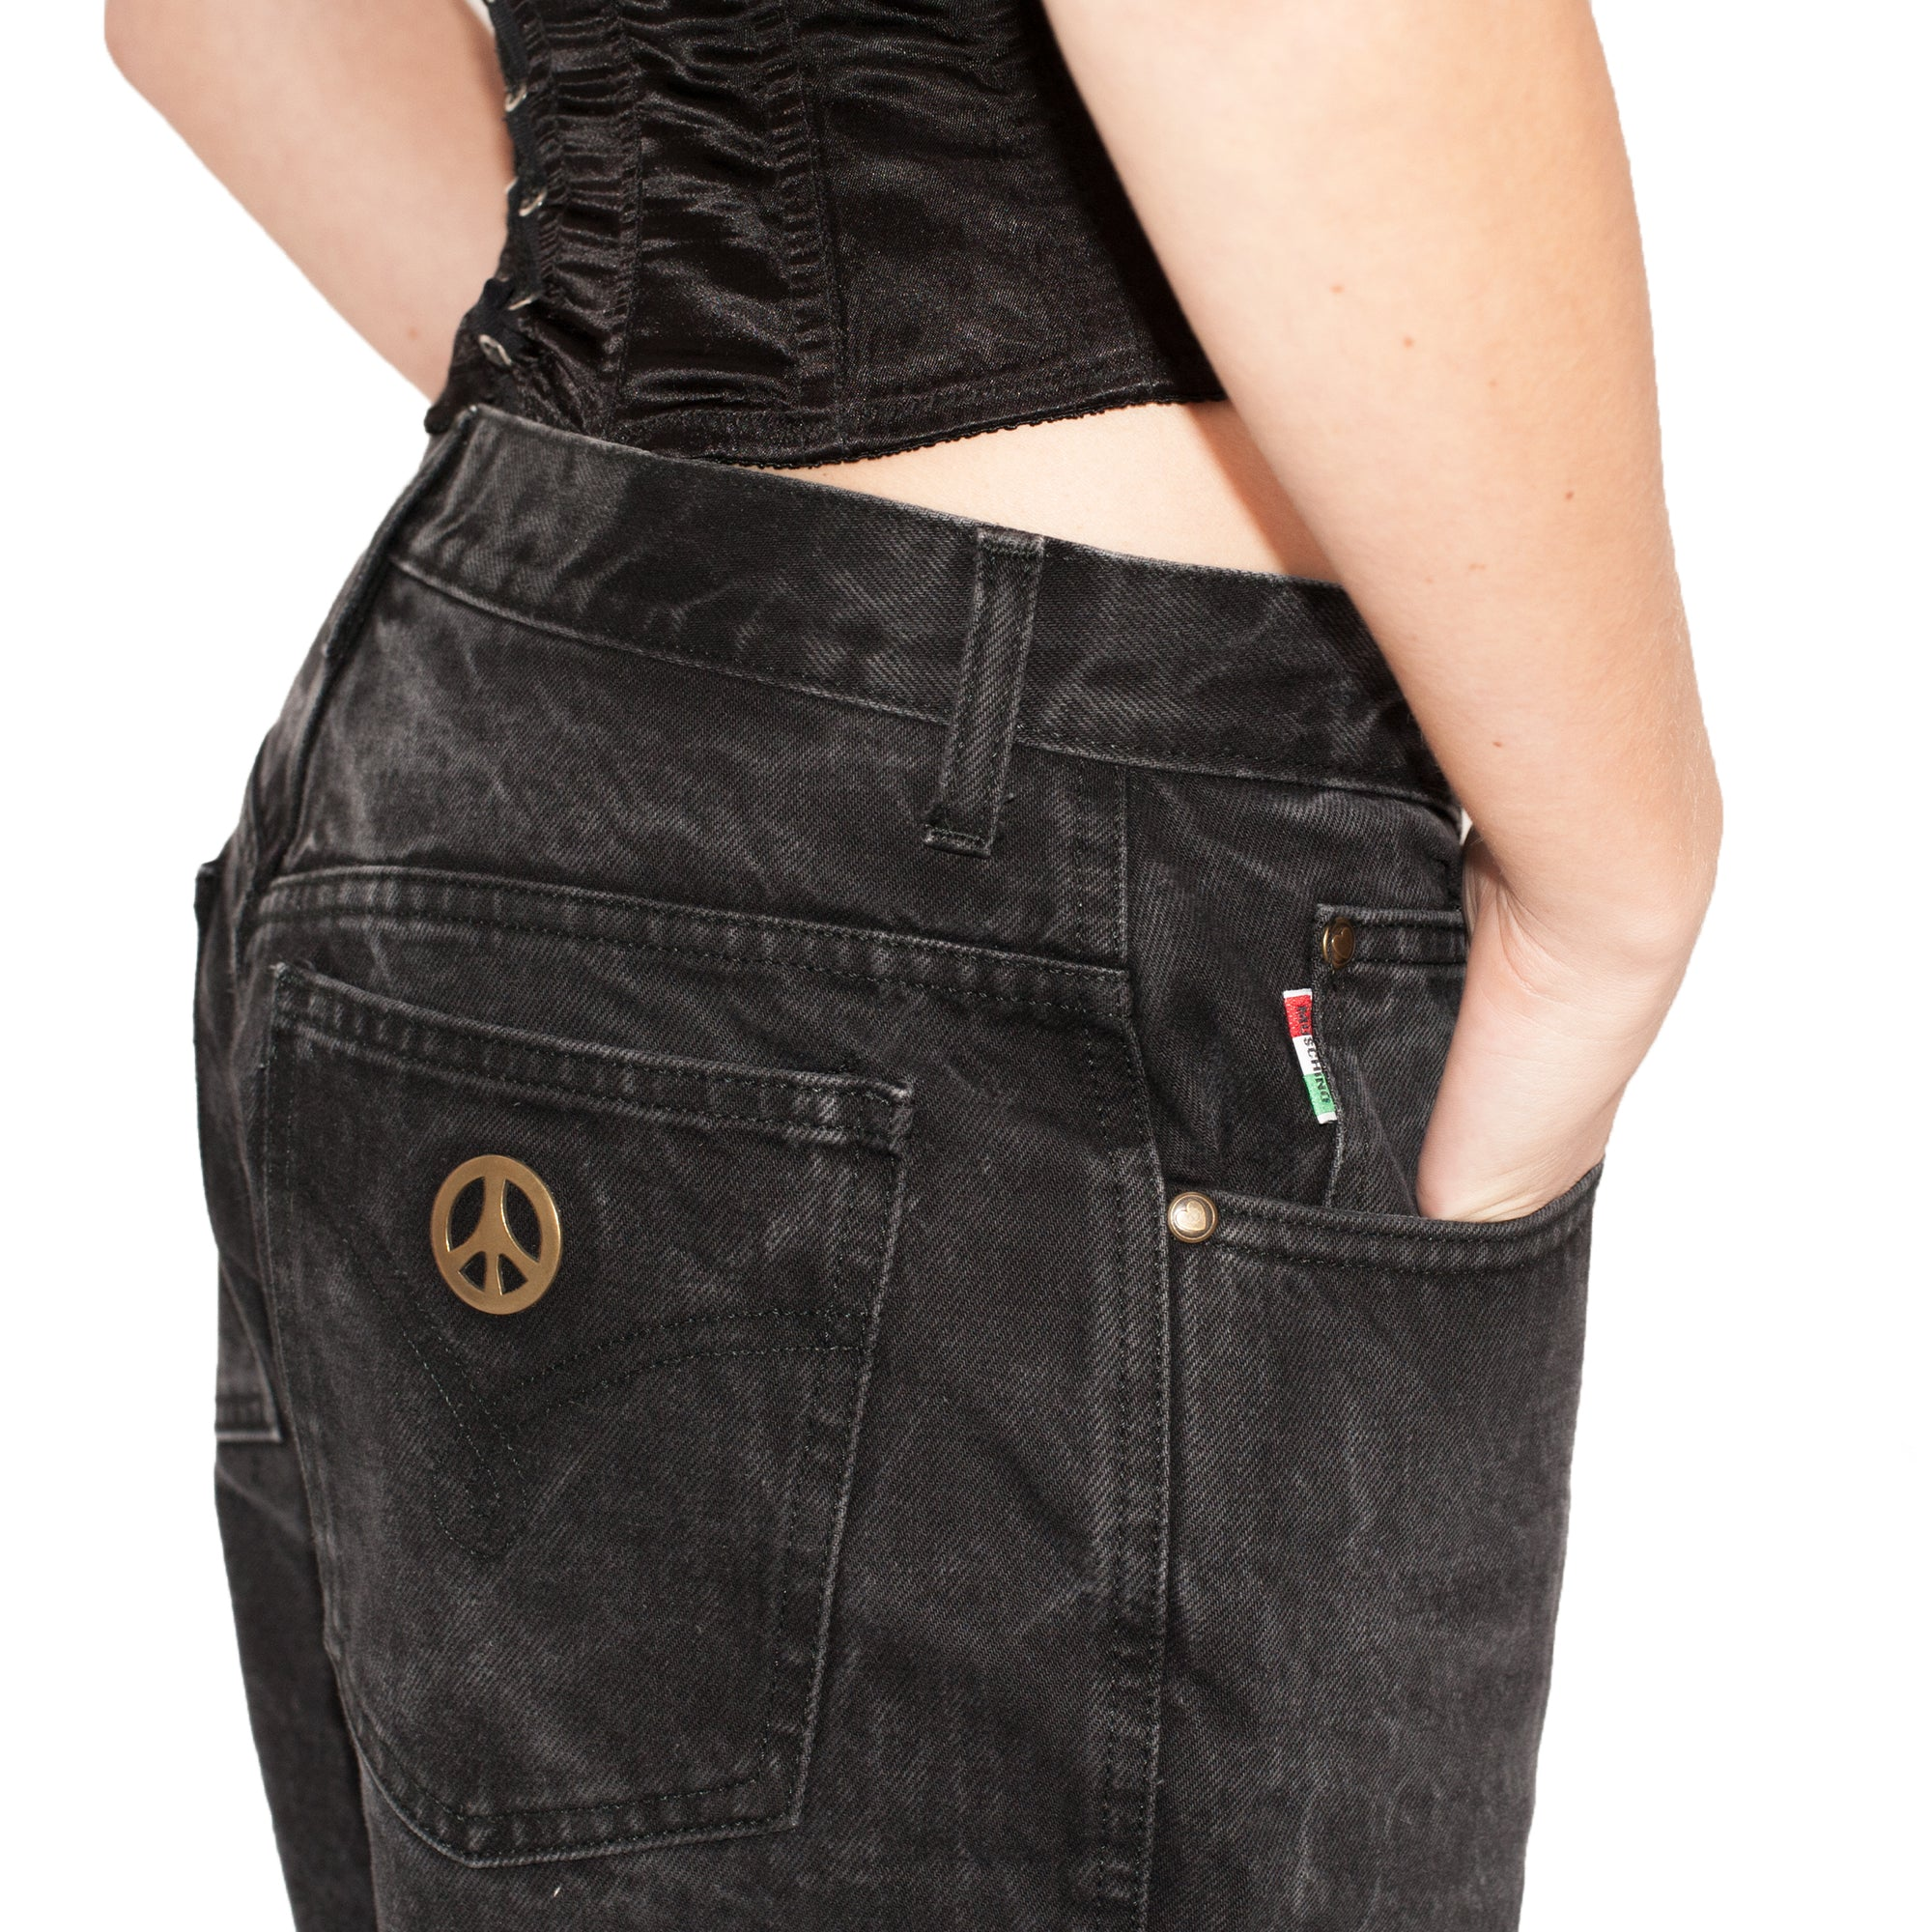 Moschino Jeans (Black) UK 12